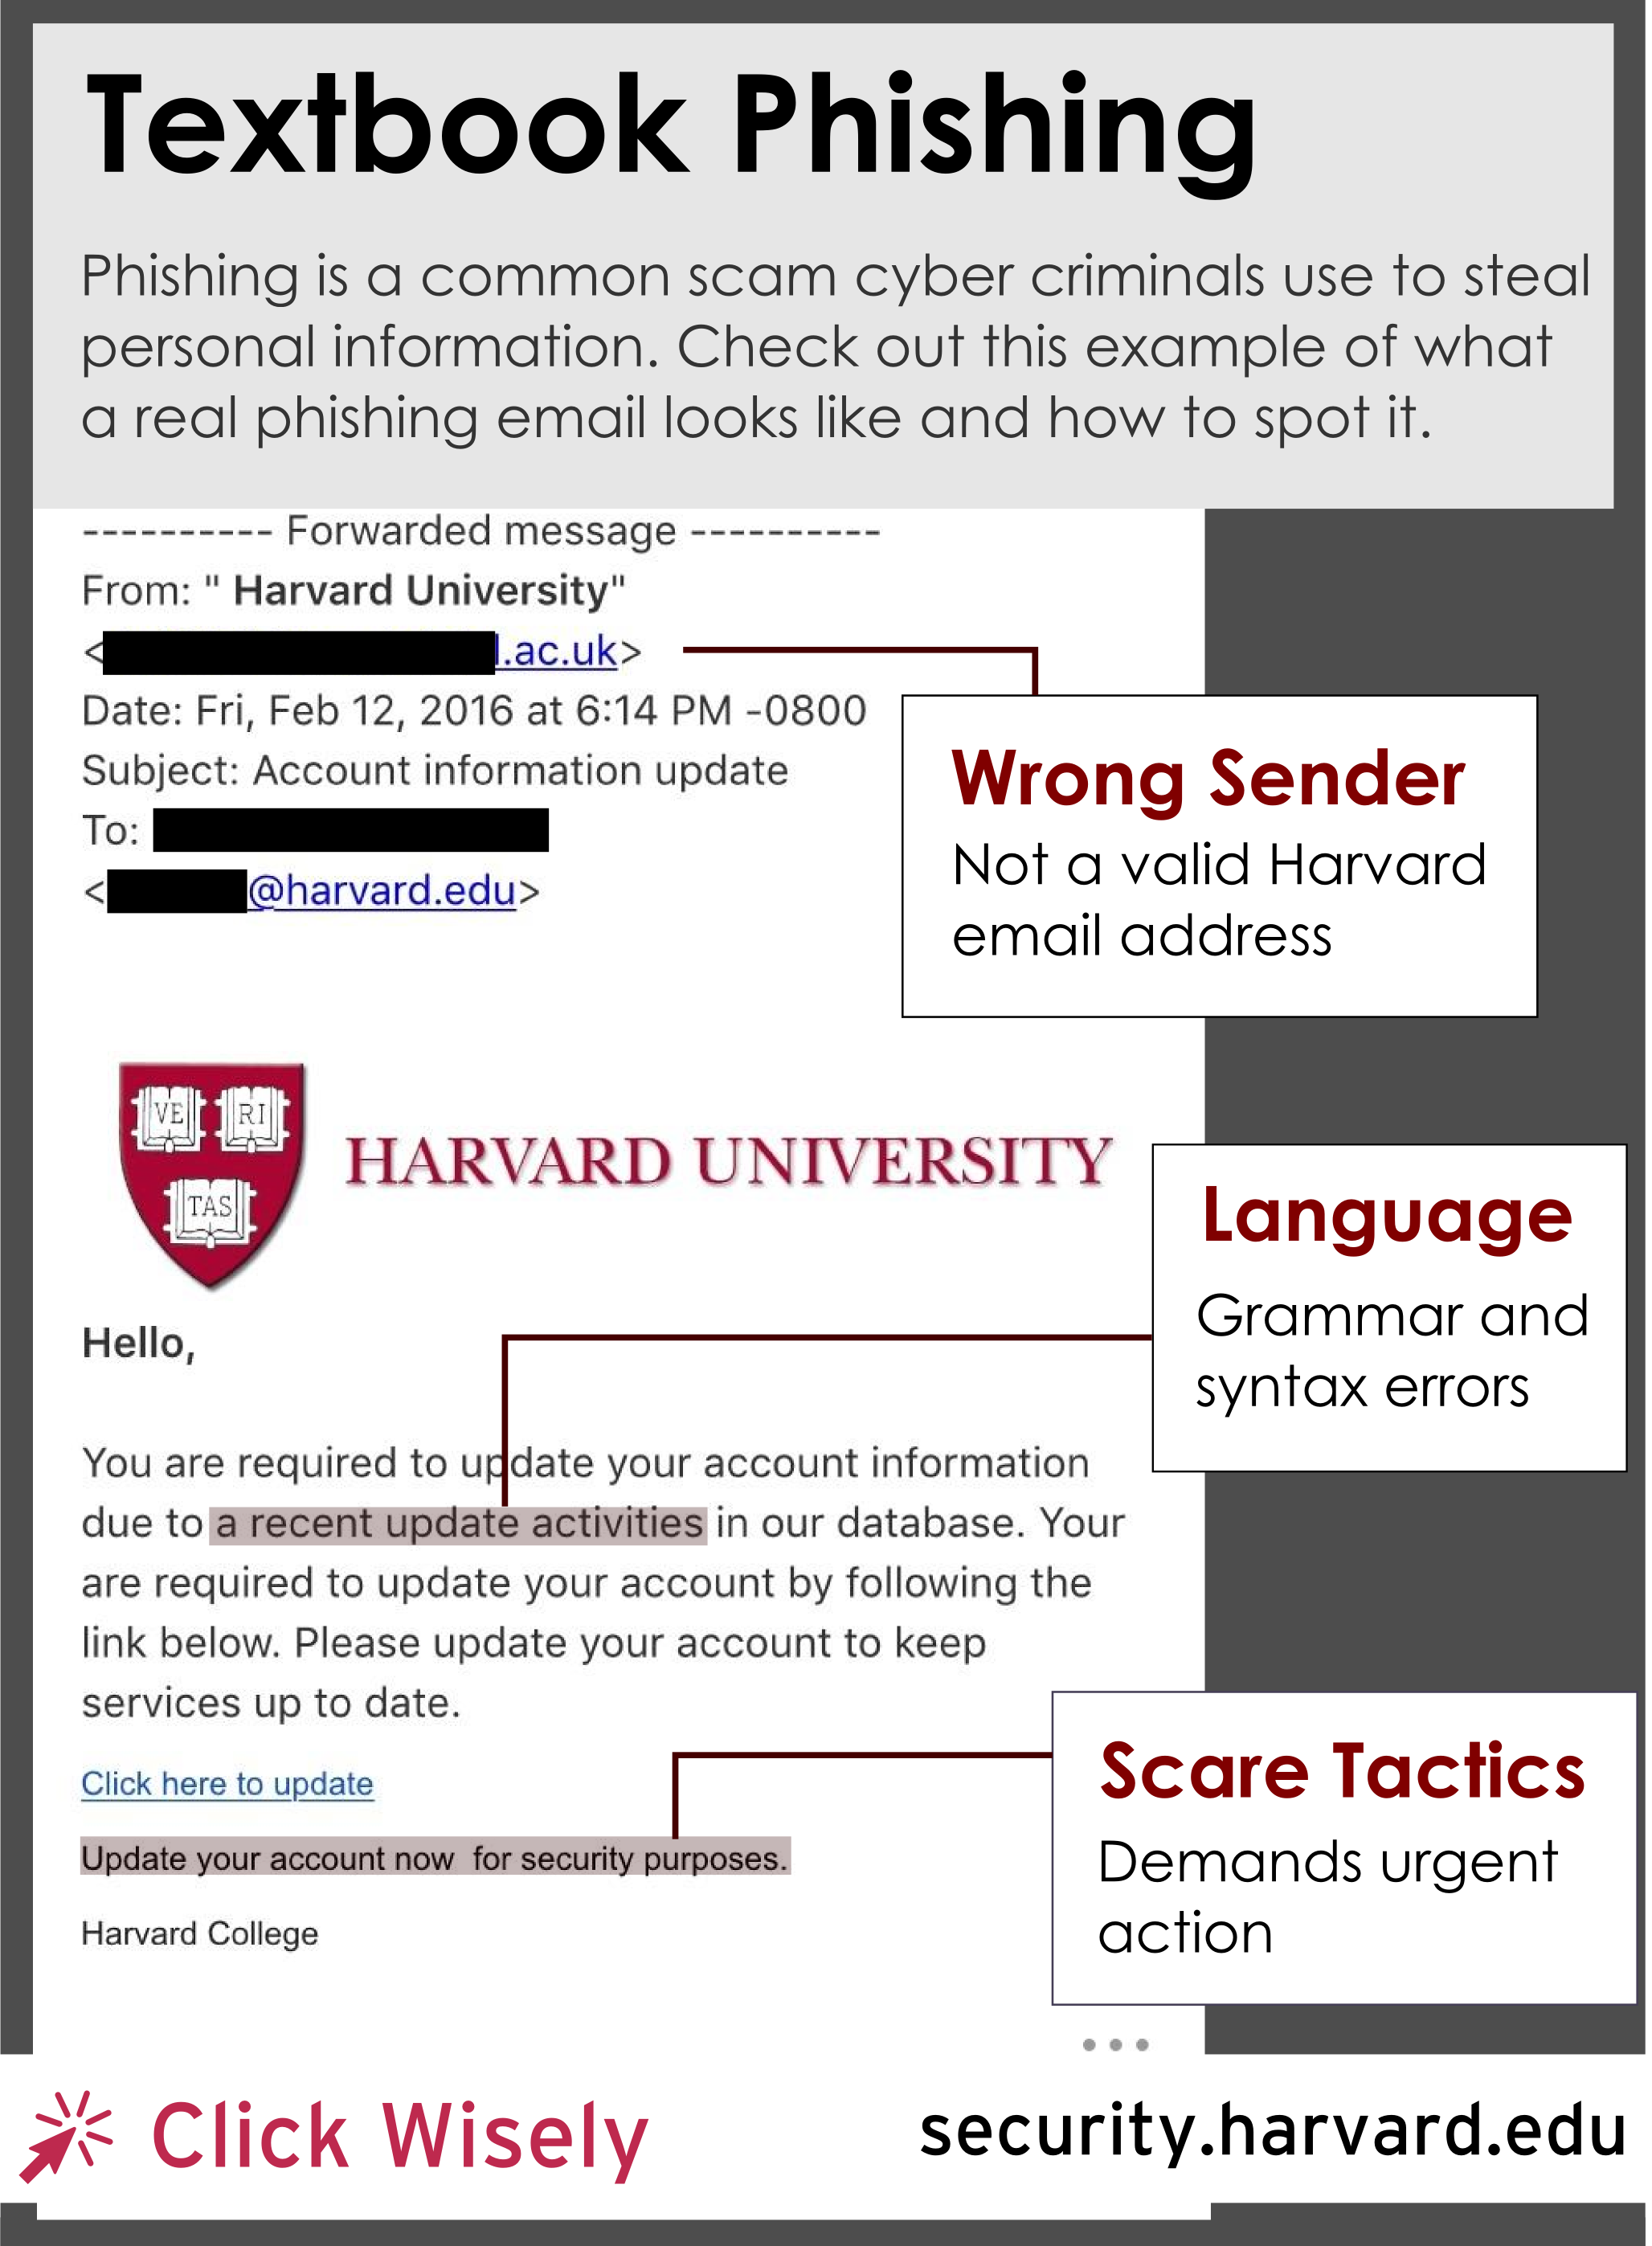 Textbook Phishing | Harvard Law School